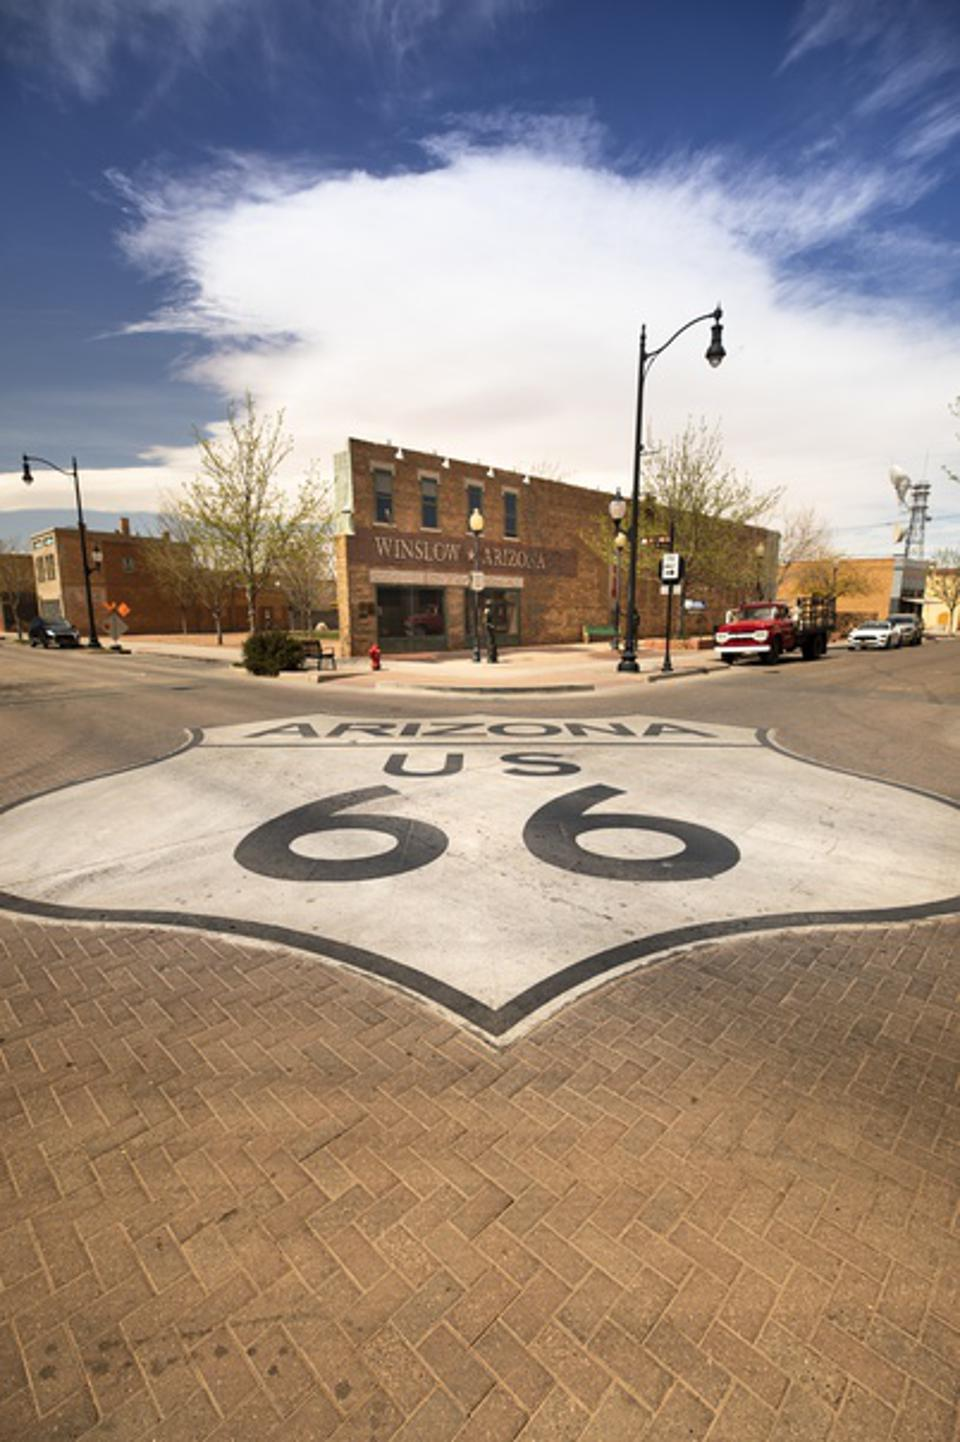 Winslow Arizona downtown intersection along the historic Route 66